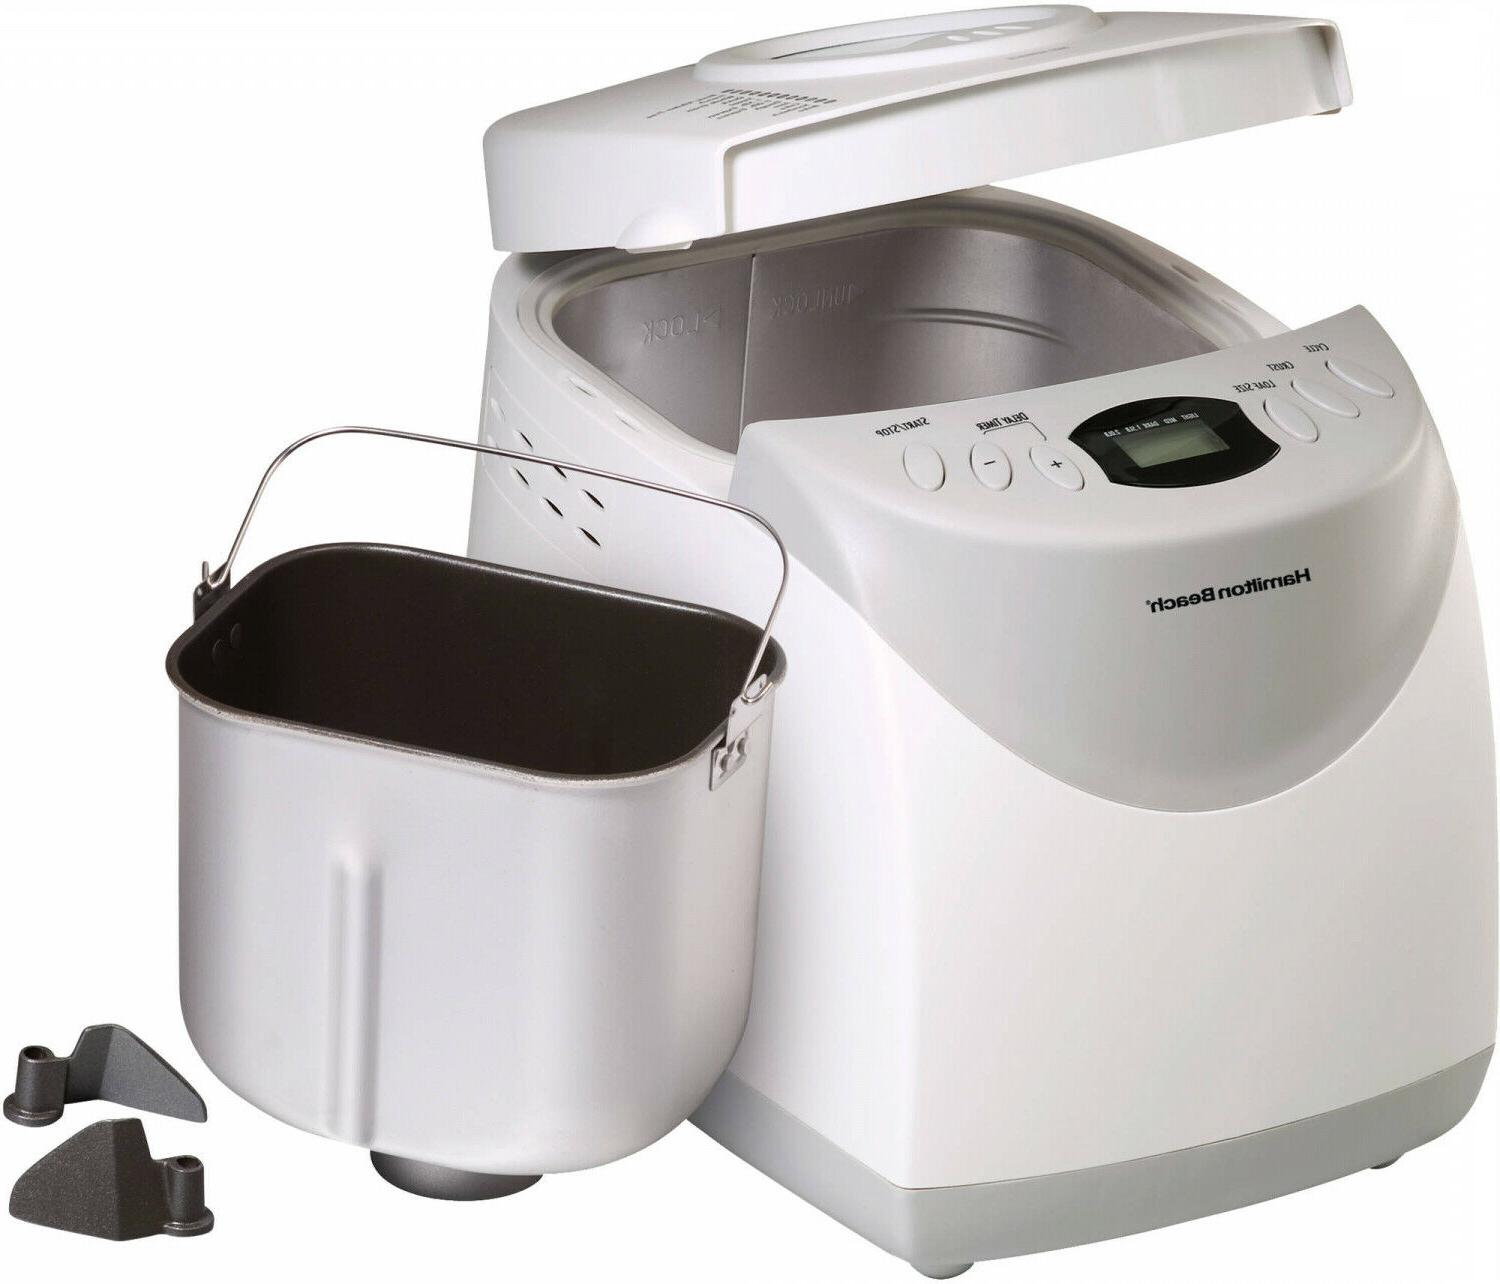 Breadmaker Making Auto Cooking Home Bakery Baker